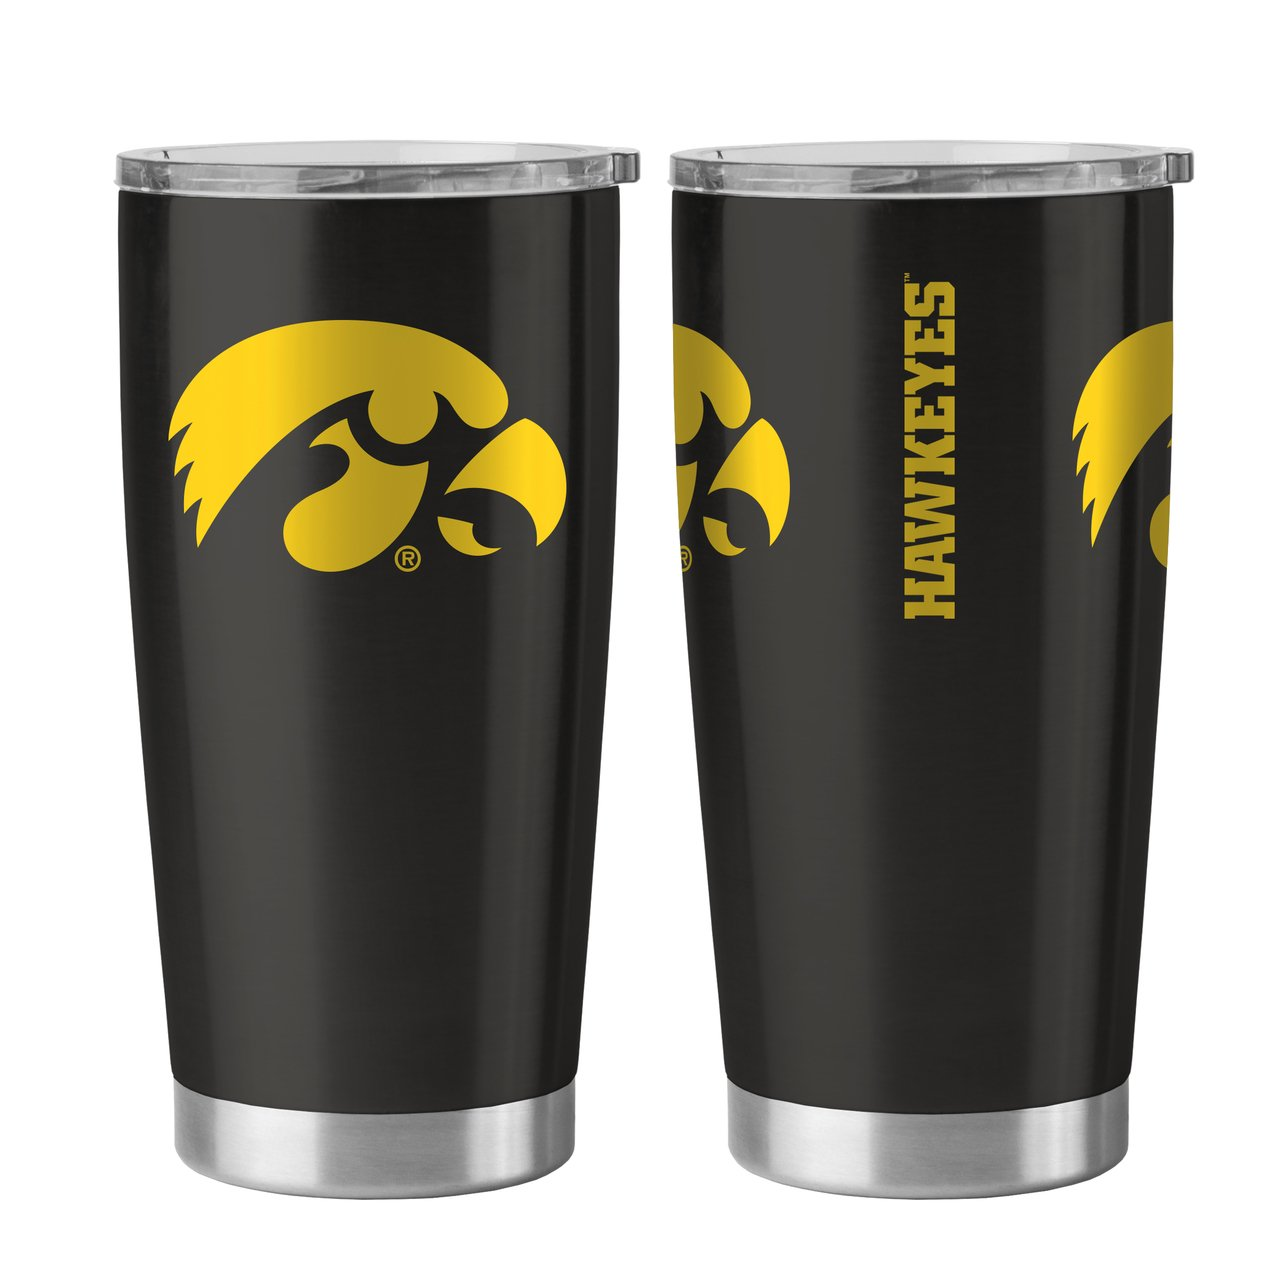 Iowa Hawkeyes 20 oz Ultra Stainless Steel Travel Tumbler by Boelter Sports